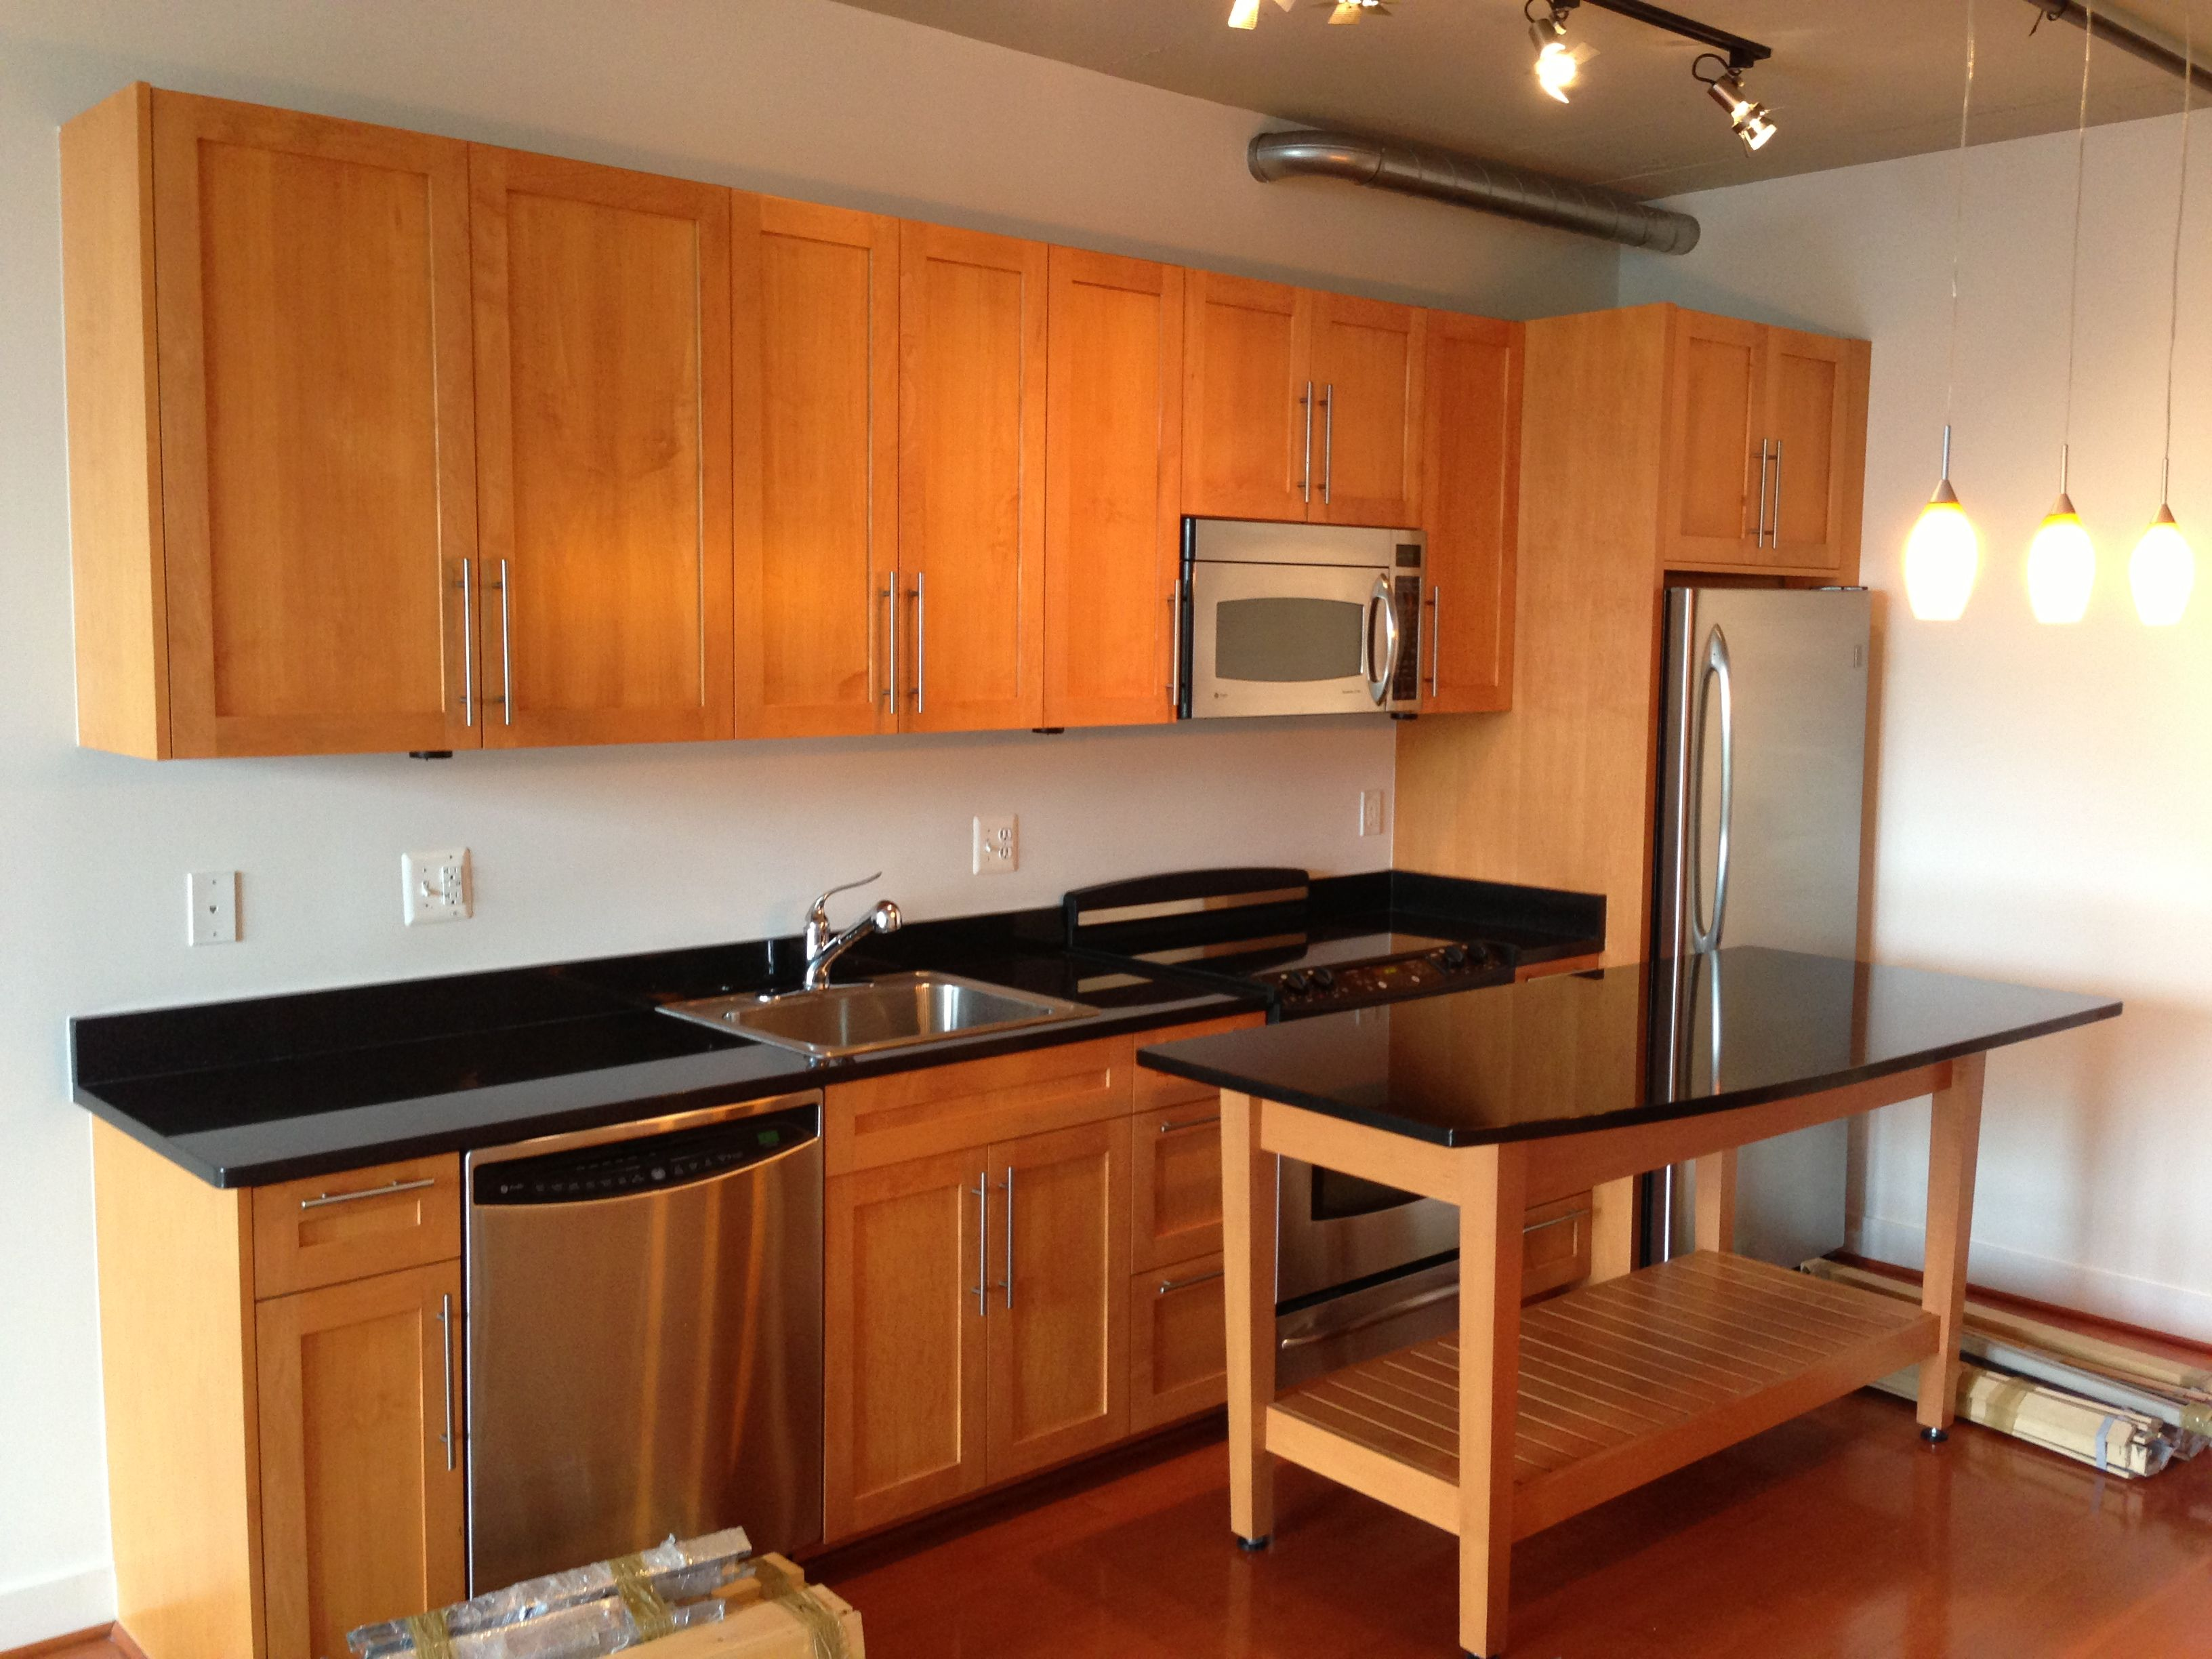 Kitchen cabinets for assembly - 1 Day Complete Kitchen Cabinets Installation Call Any Assembly For Kitchen Remodeling Work